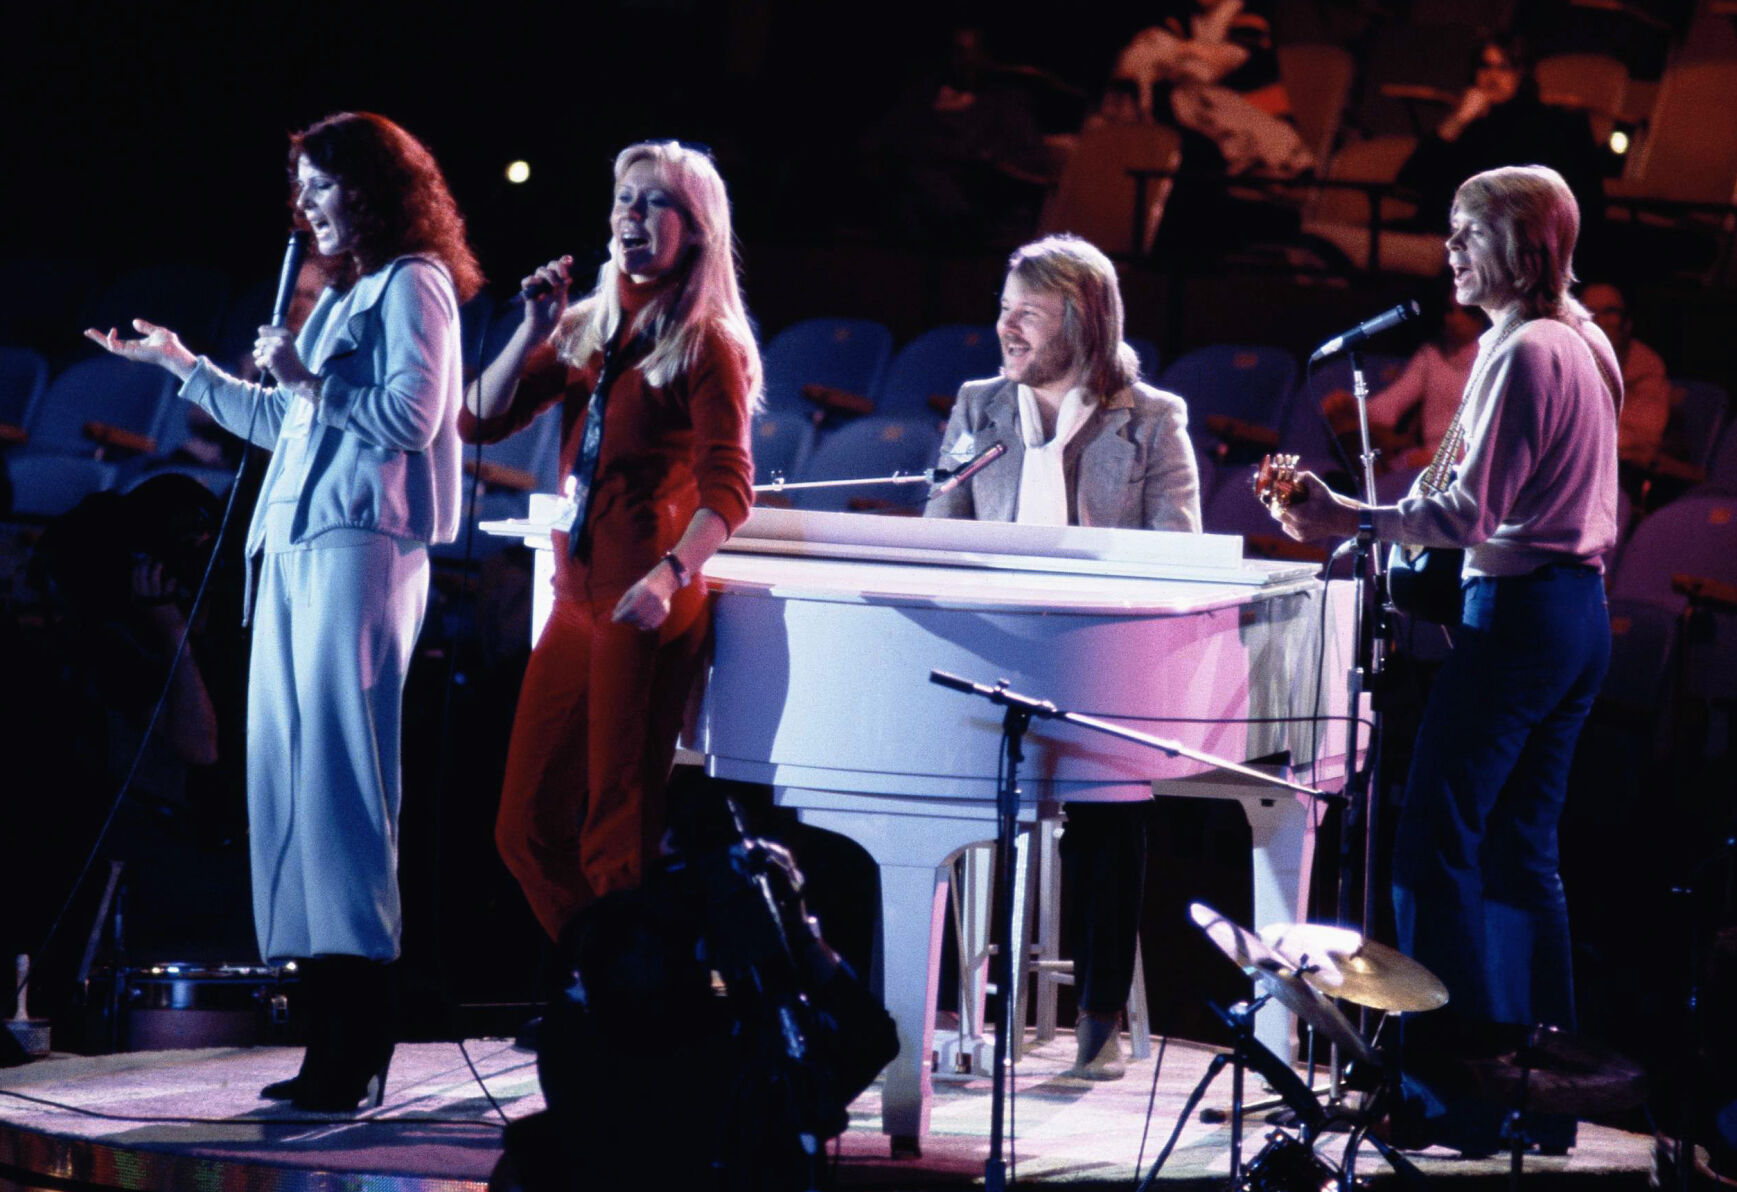 <p>ABBA, from left, Anni-Frid Lyngstad, Agnetha Foltskog, Benny Andersson and Bjorn Ulvaeus, perform at the United Nations General Assembly in New York during taping of a special on Jan. 9, 1979.</p>